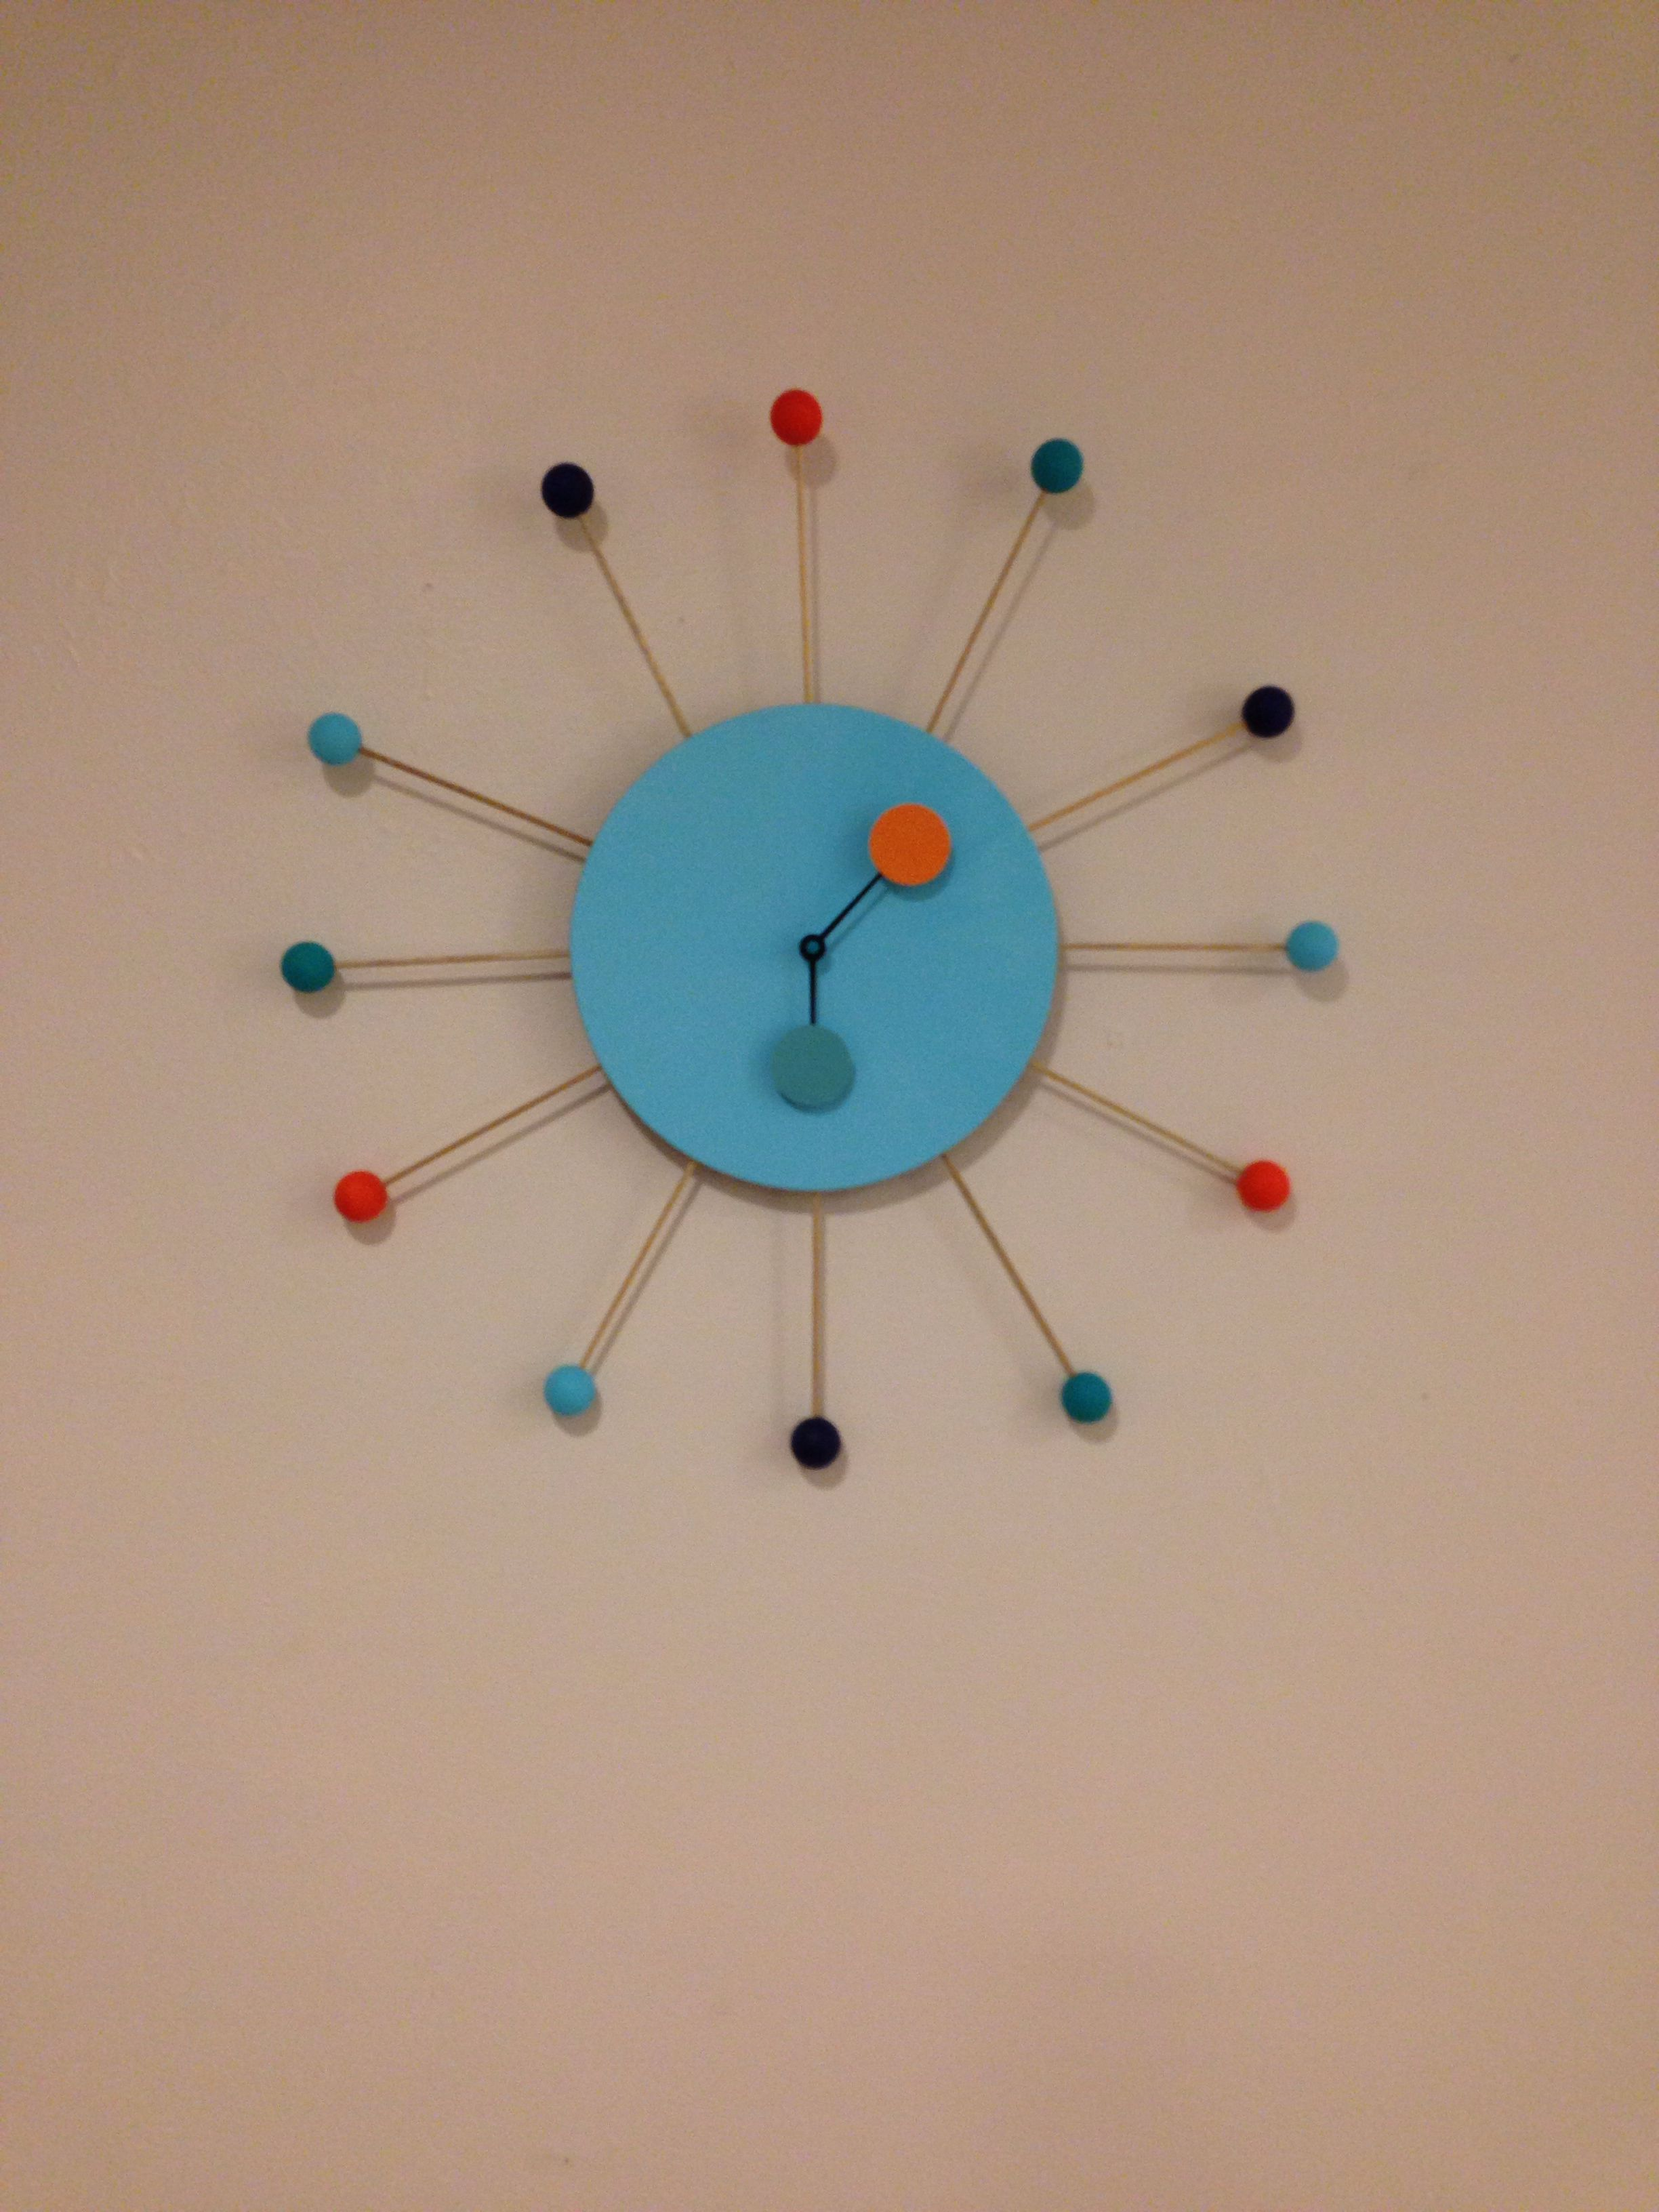 Clock- wooden beads and wooden dowels attached to painted thrift store clock. Paper circles attached to hands.